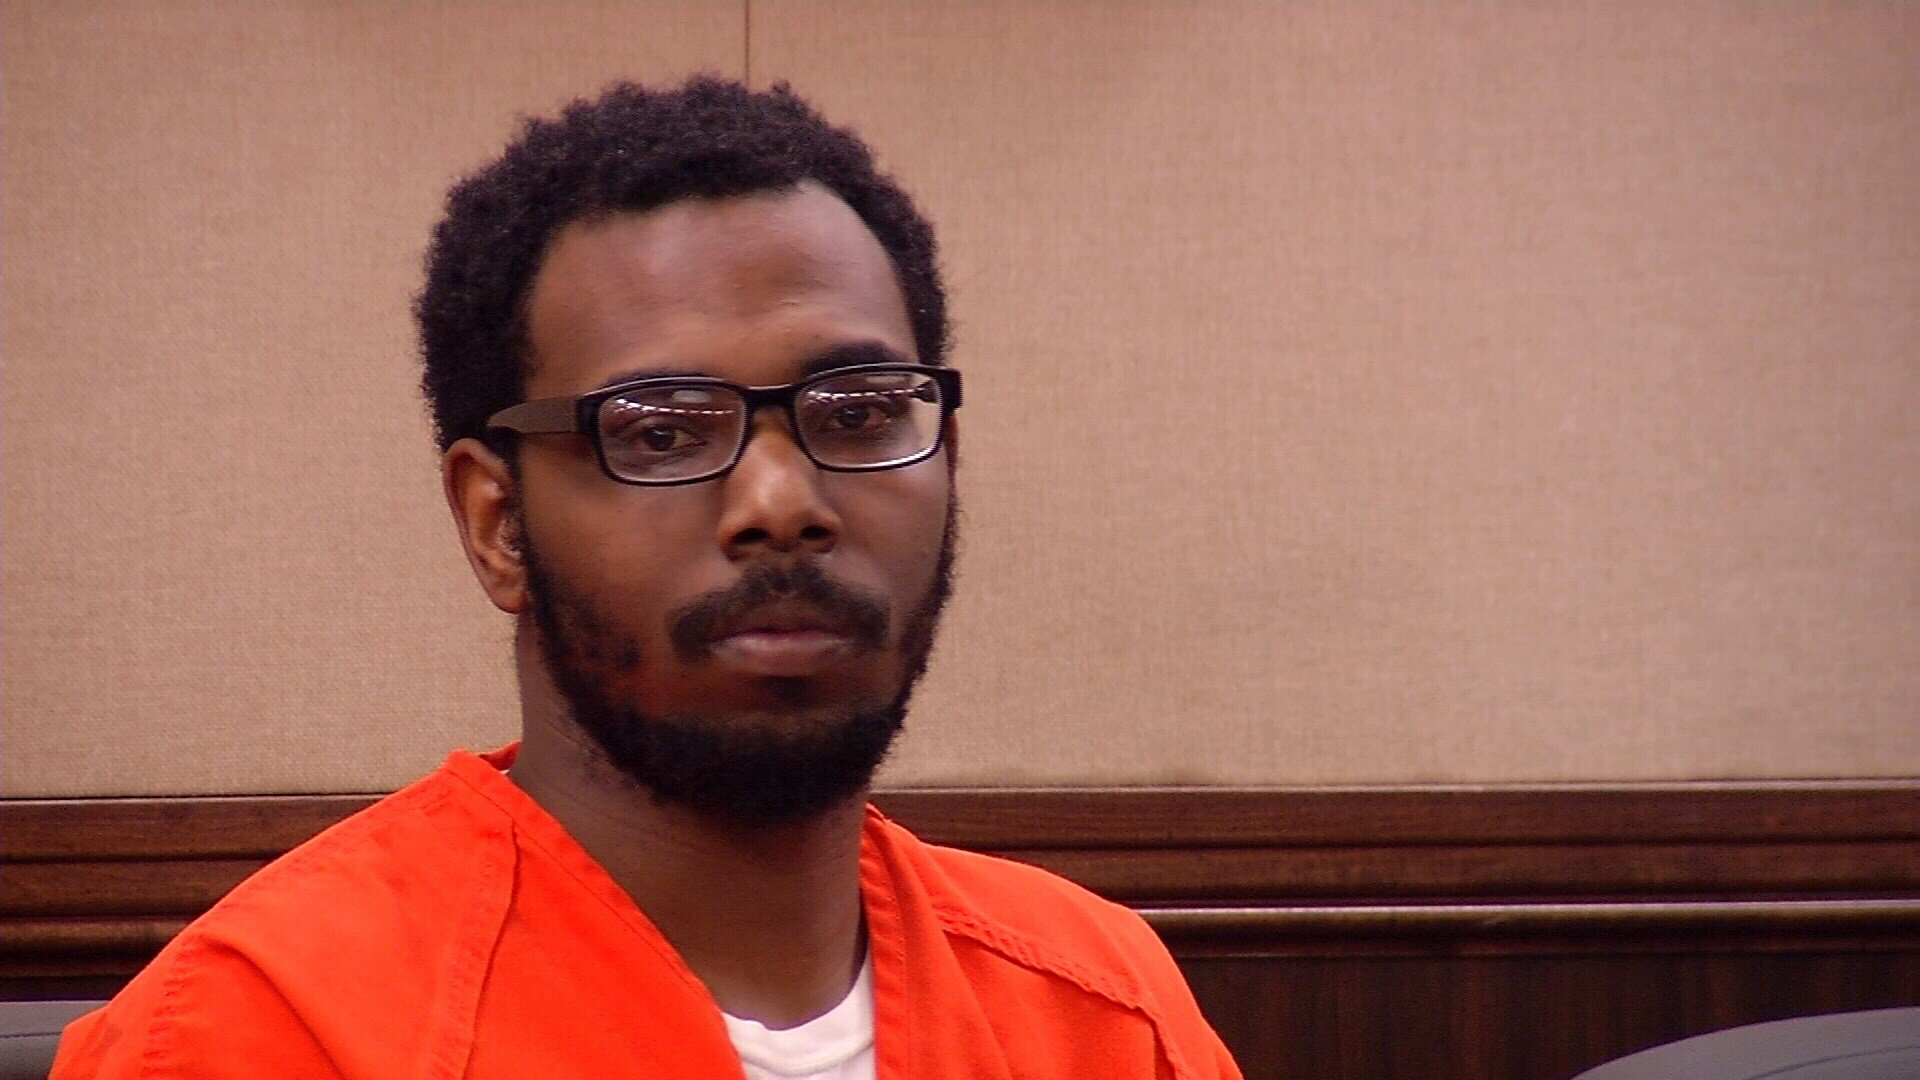 Paris Richardson pleaded not guilty to a murder charge during his arraignment Wednesday afternoon.